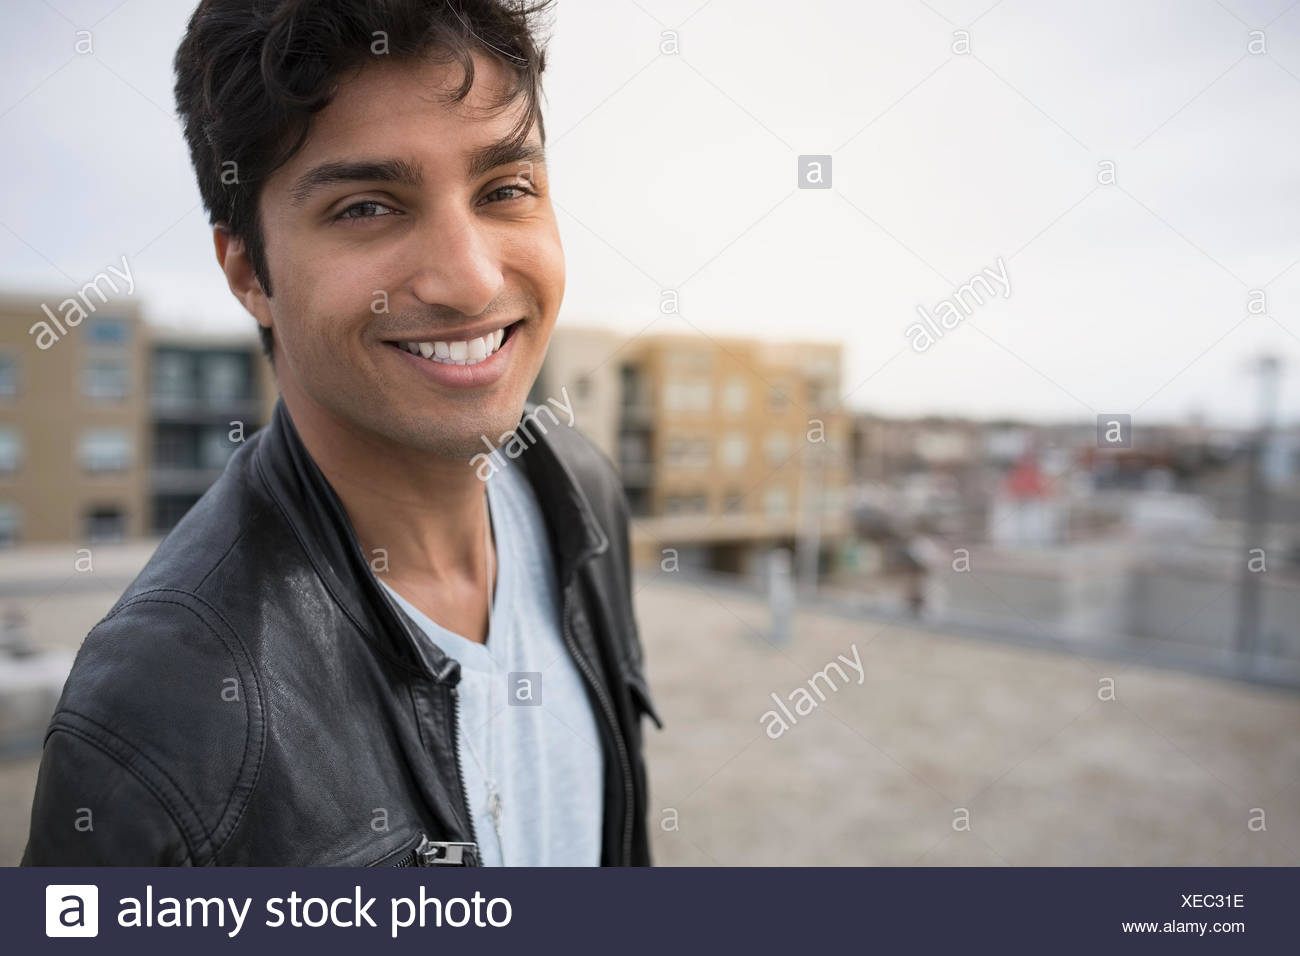 Portrait of smiling man on urban rooftop - Stock Image